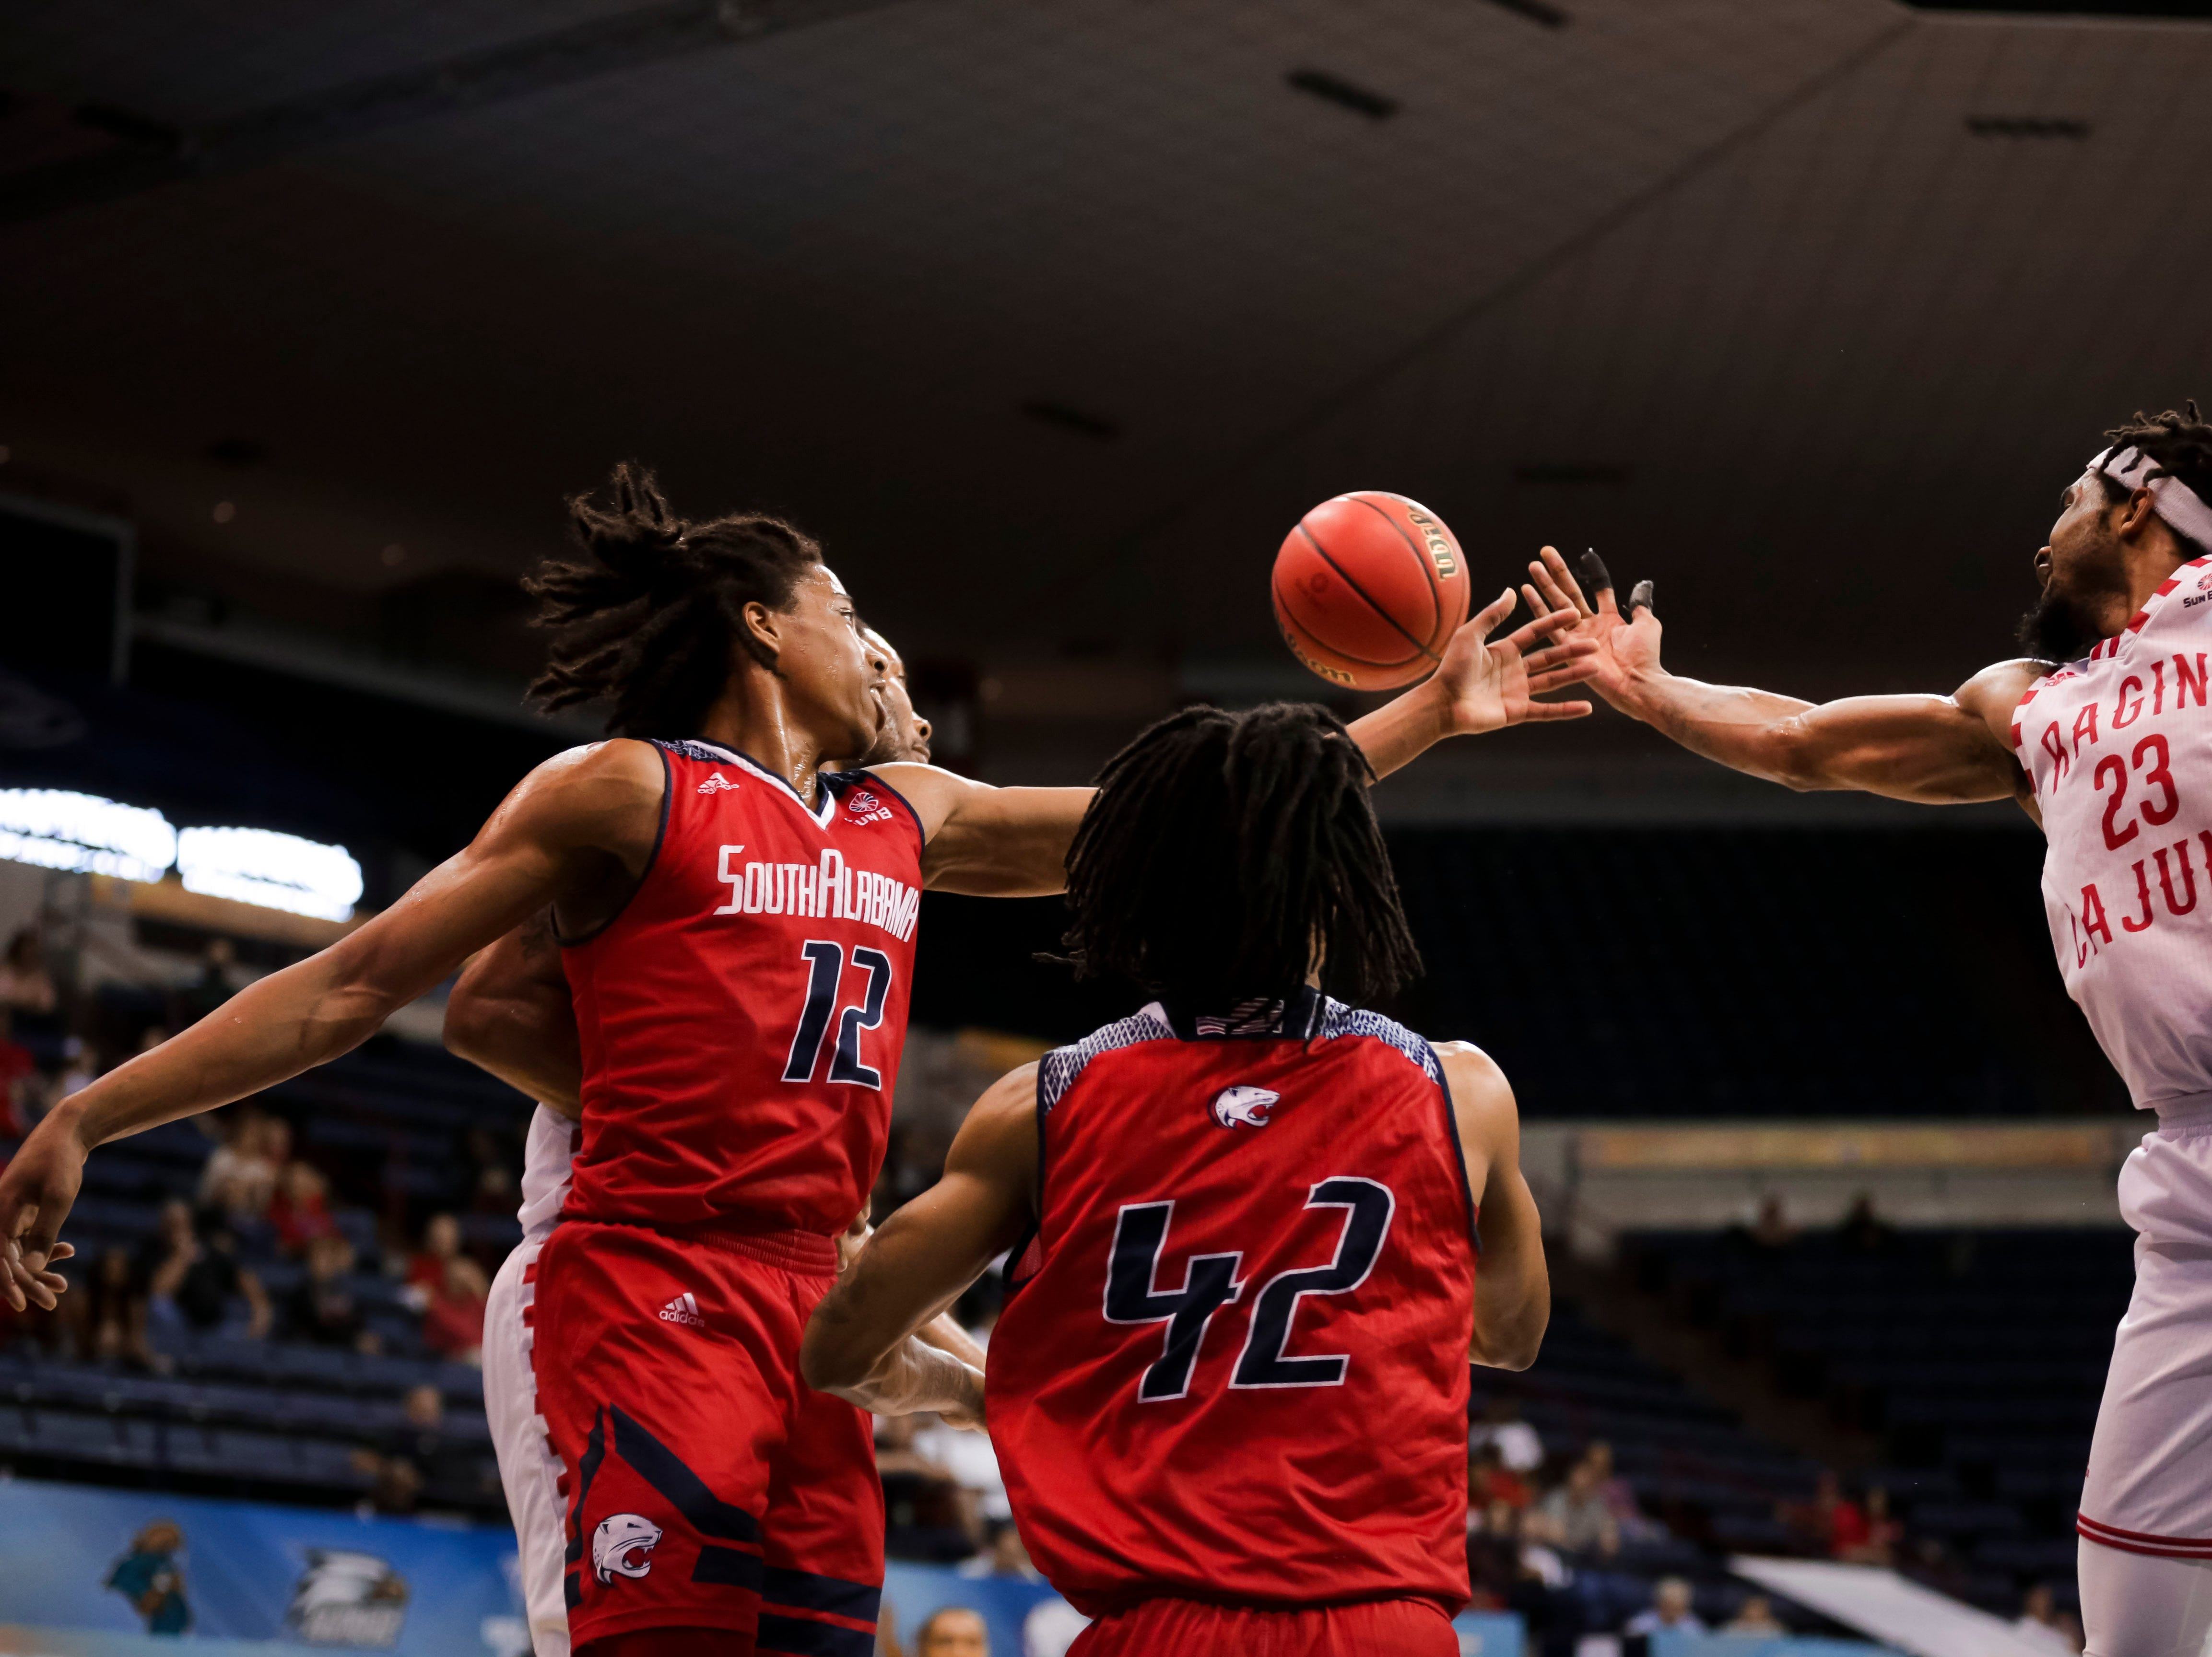 UL's Jakeenan Gant (right) fights for the ball, as the Ragin' Cajuns fell to South Alabama, 70-69, on Thursday at the Sun Belt Men's Basketball Championship in New Orleans.